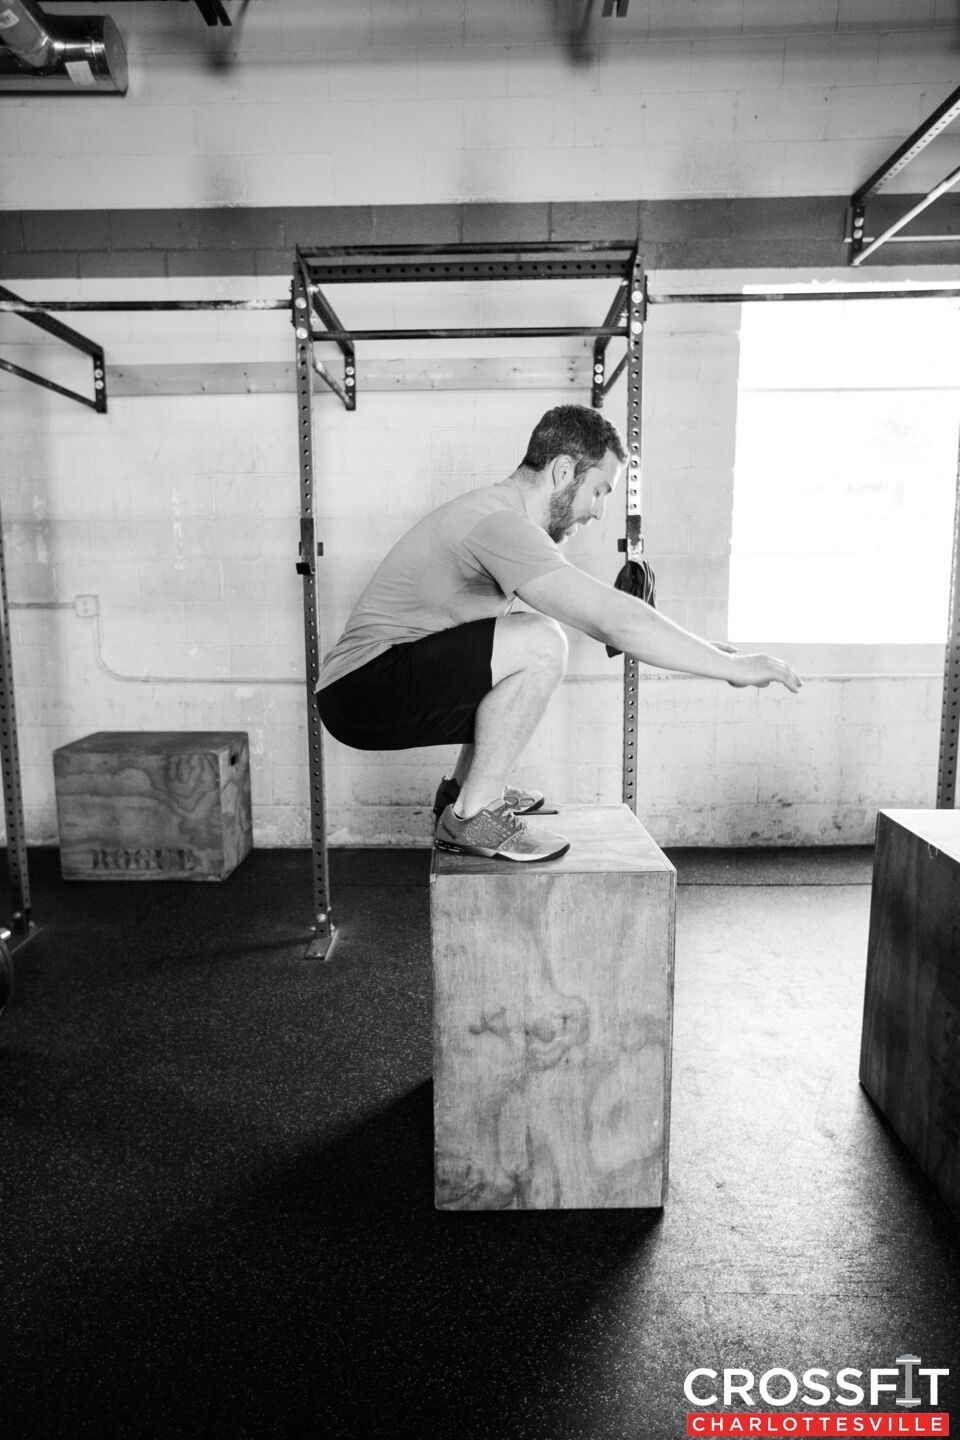 crossfit-charlottesville_0410_preview.jpeg